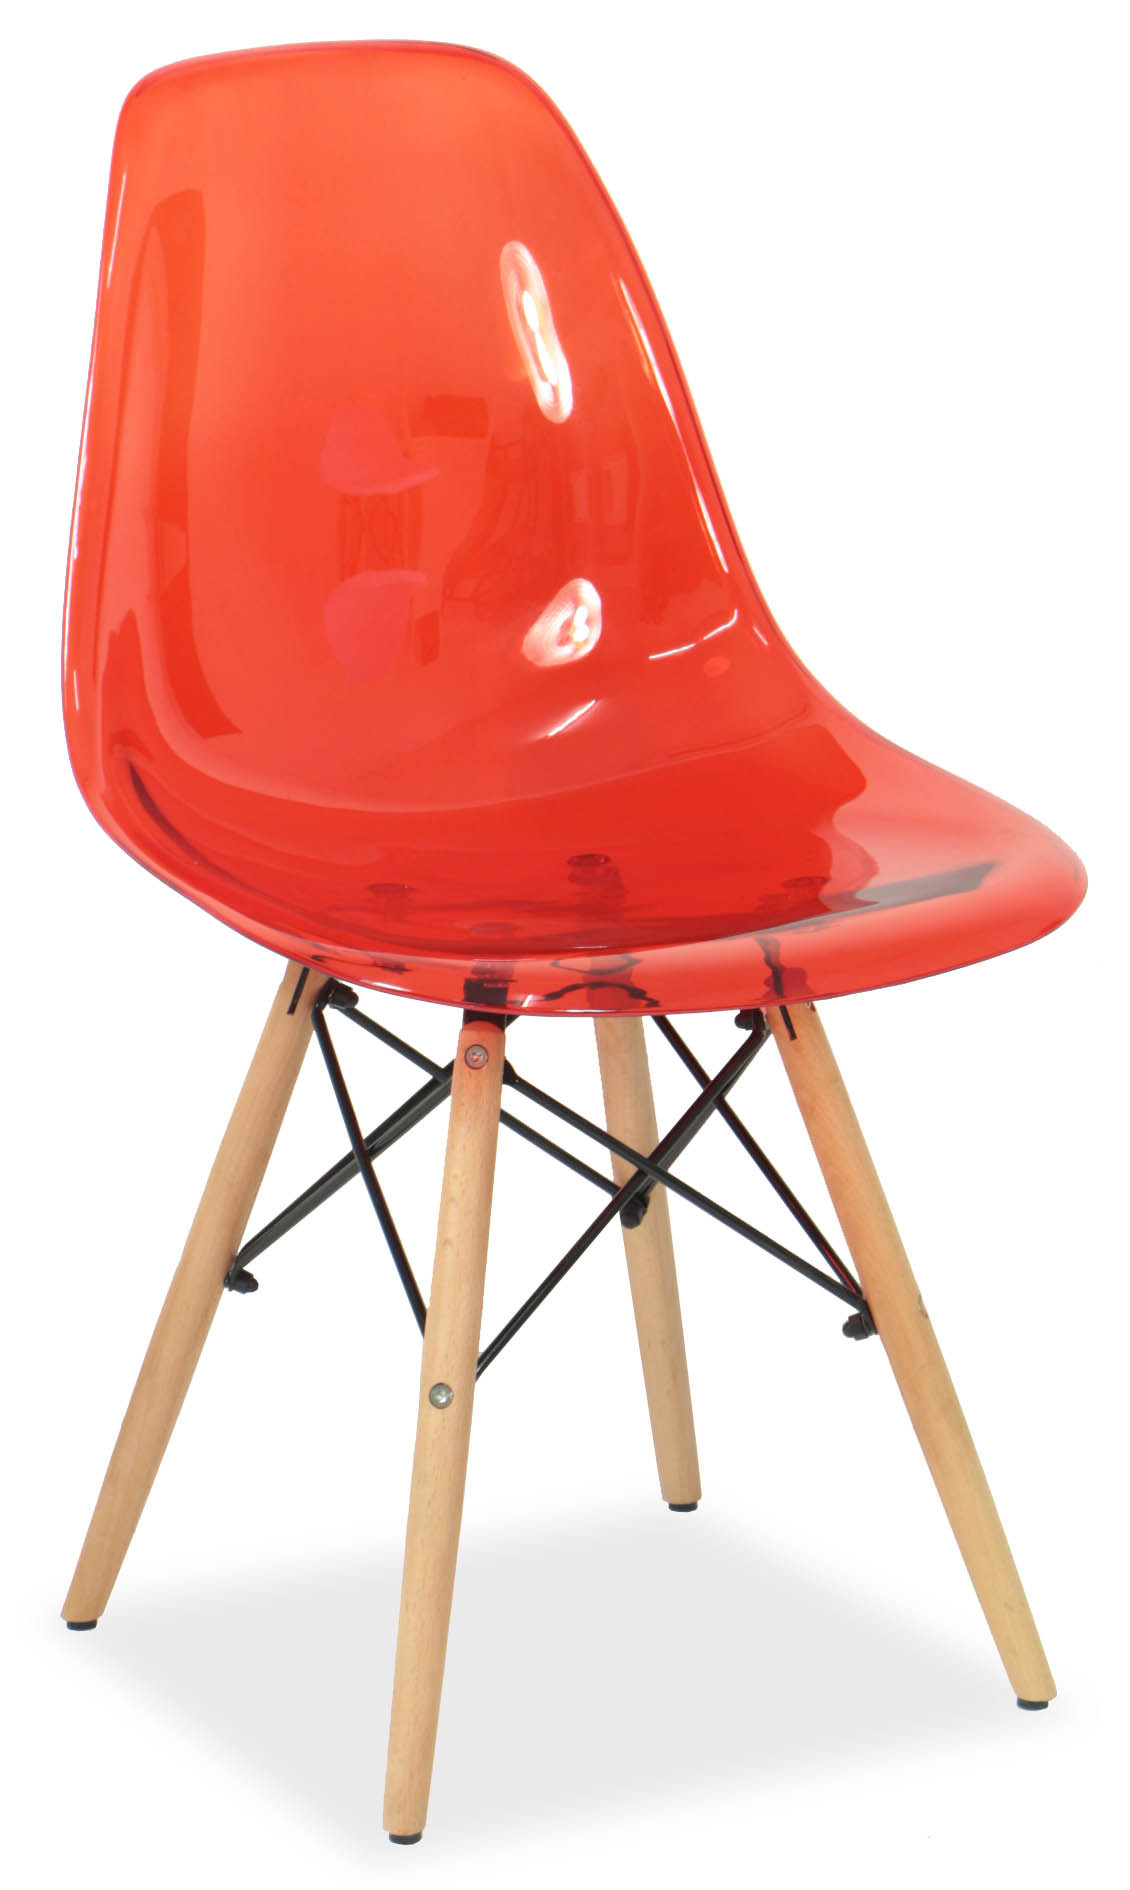 Eames clear red replica designer chair chairs seating for Imitation designer chairs